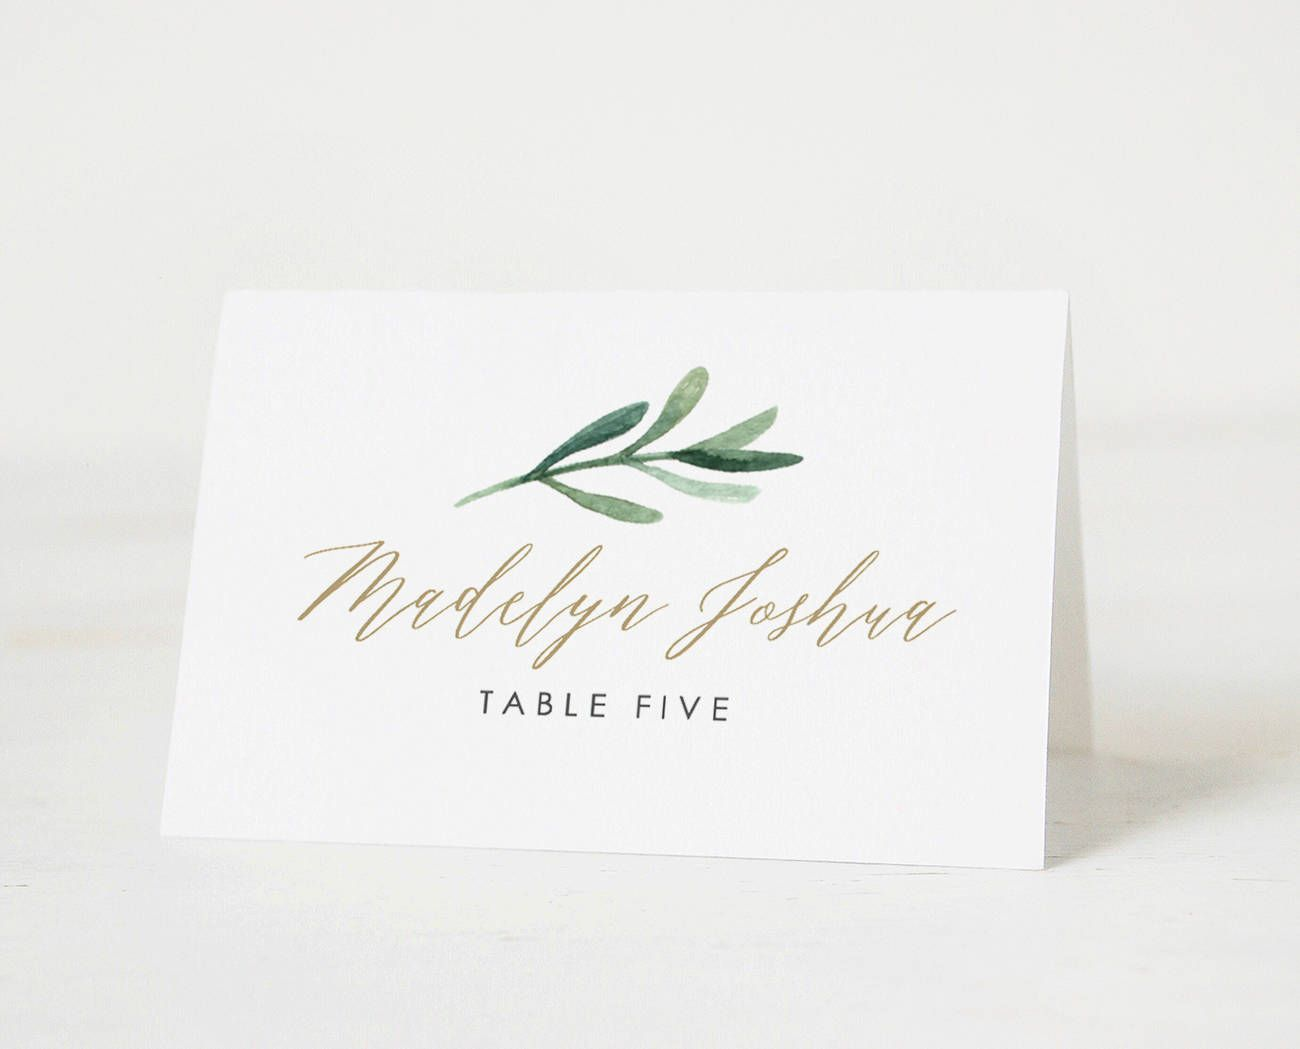 002 Shocking Name Place Card Template Free Download Idea  Psd VectorFull